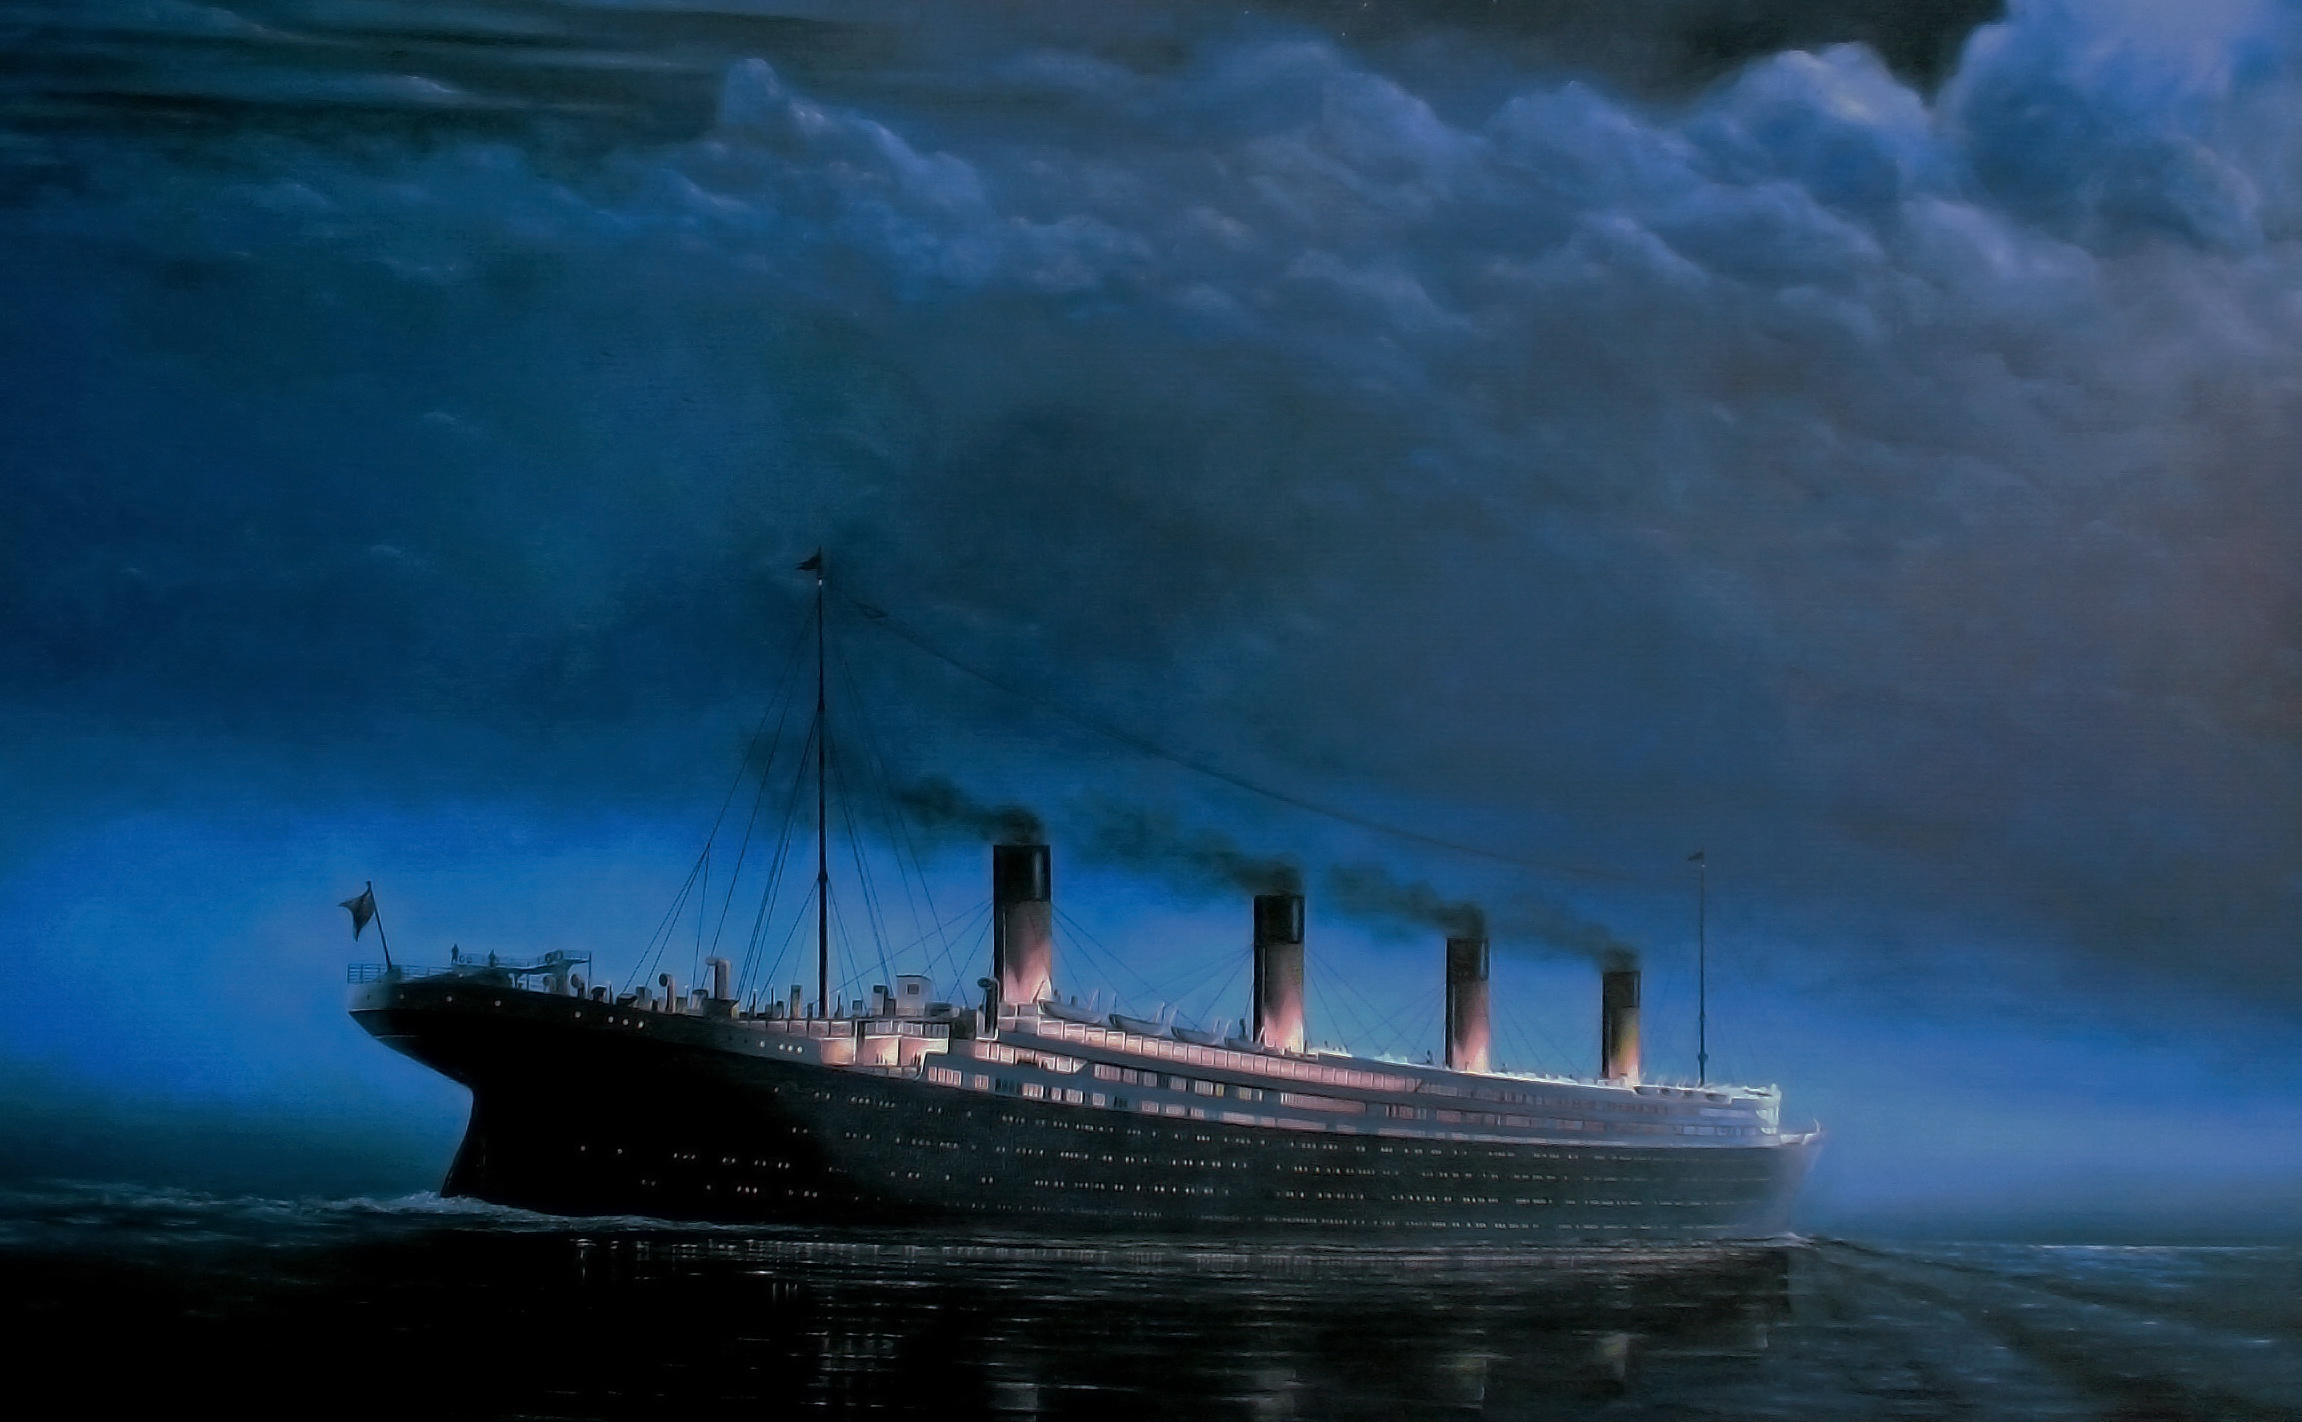 titanic ship images free - photo #5